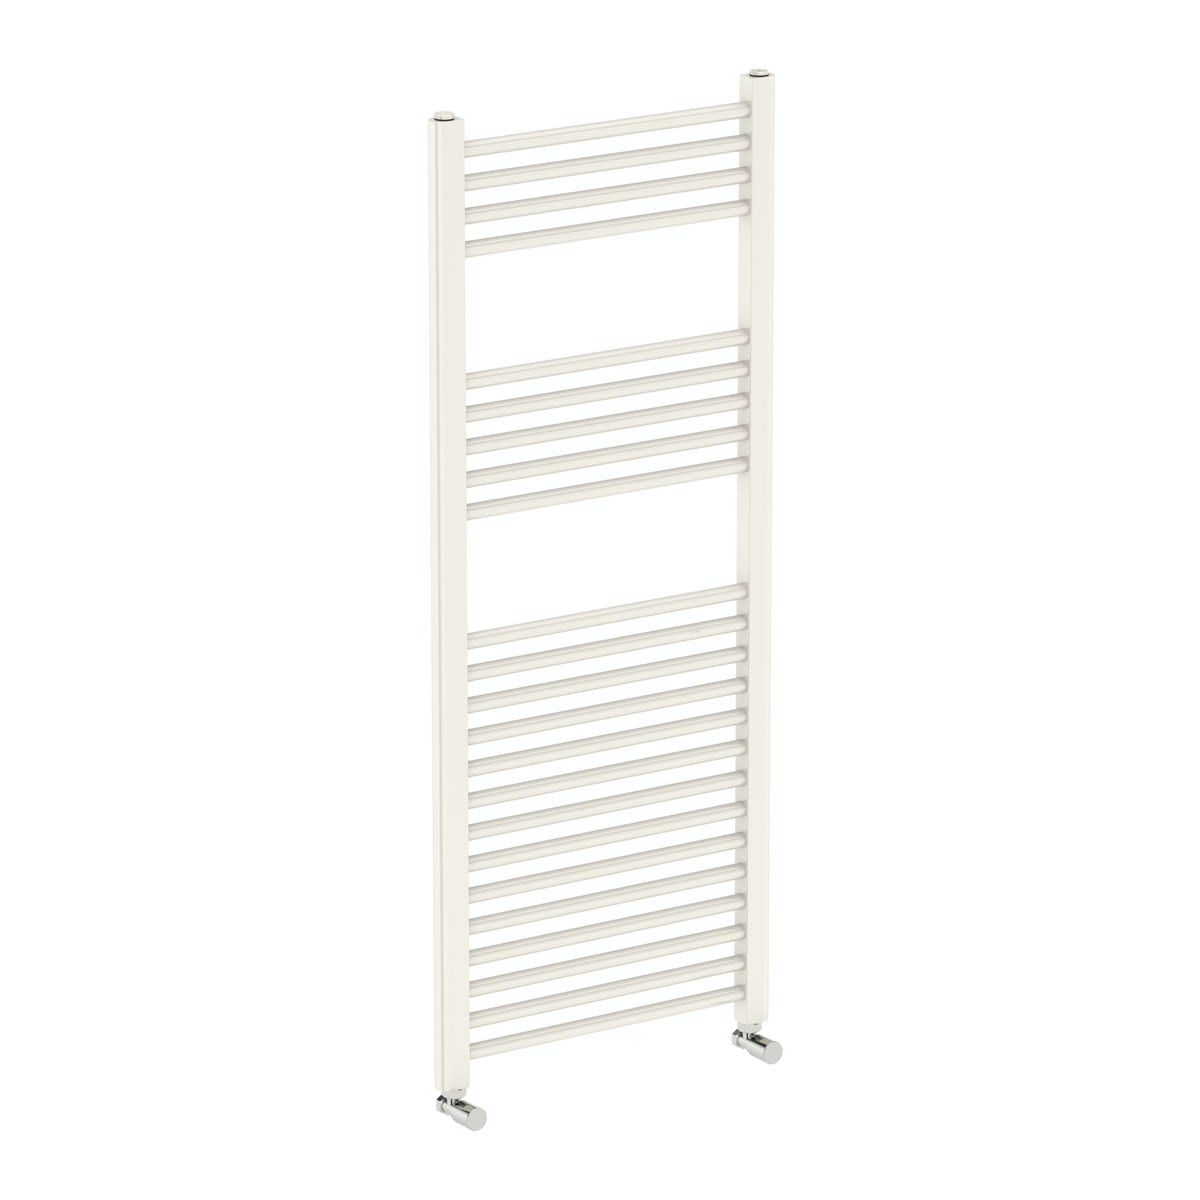 Orchard Eden round white heated towel rail 1200 x 490 offer pack